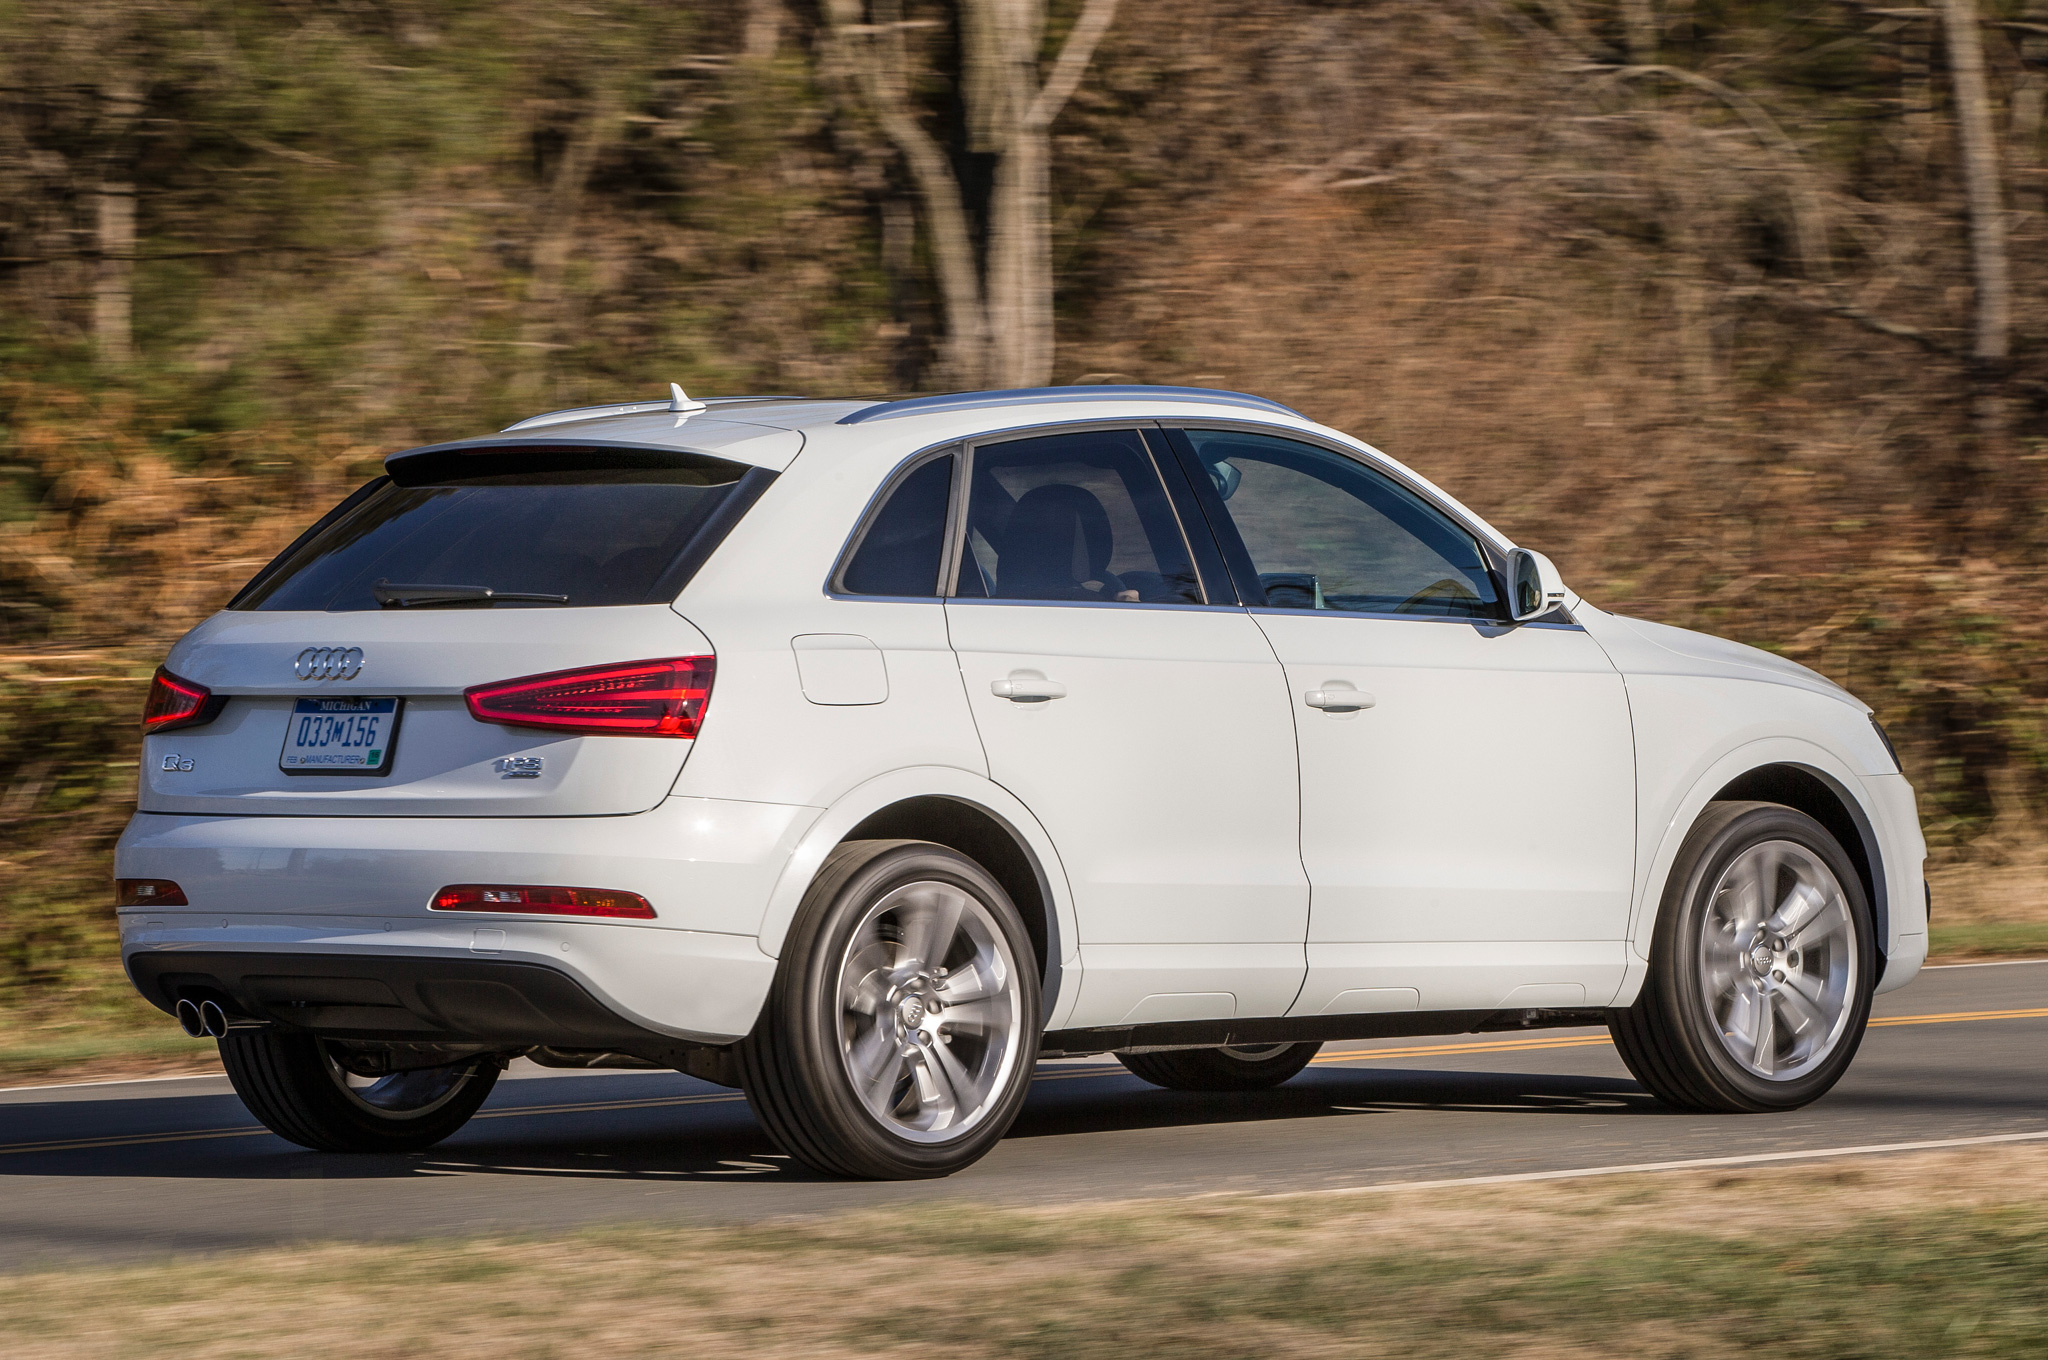 2015 Audi Q3 Rear Side View (Photo 12 of 21)